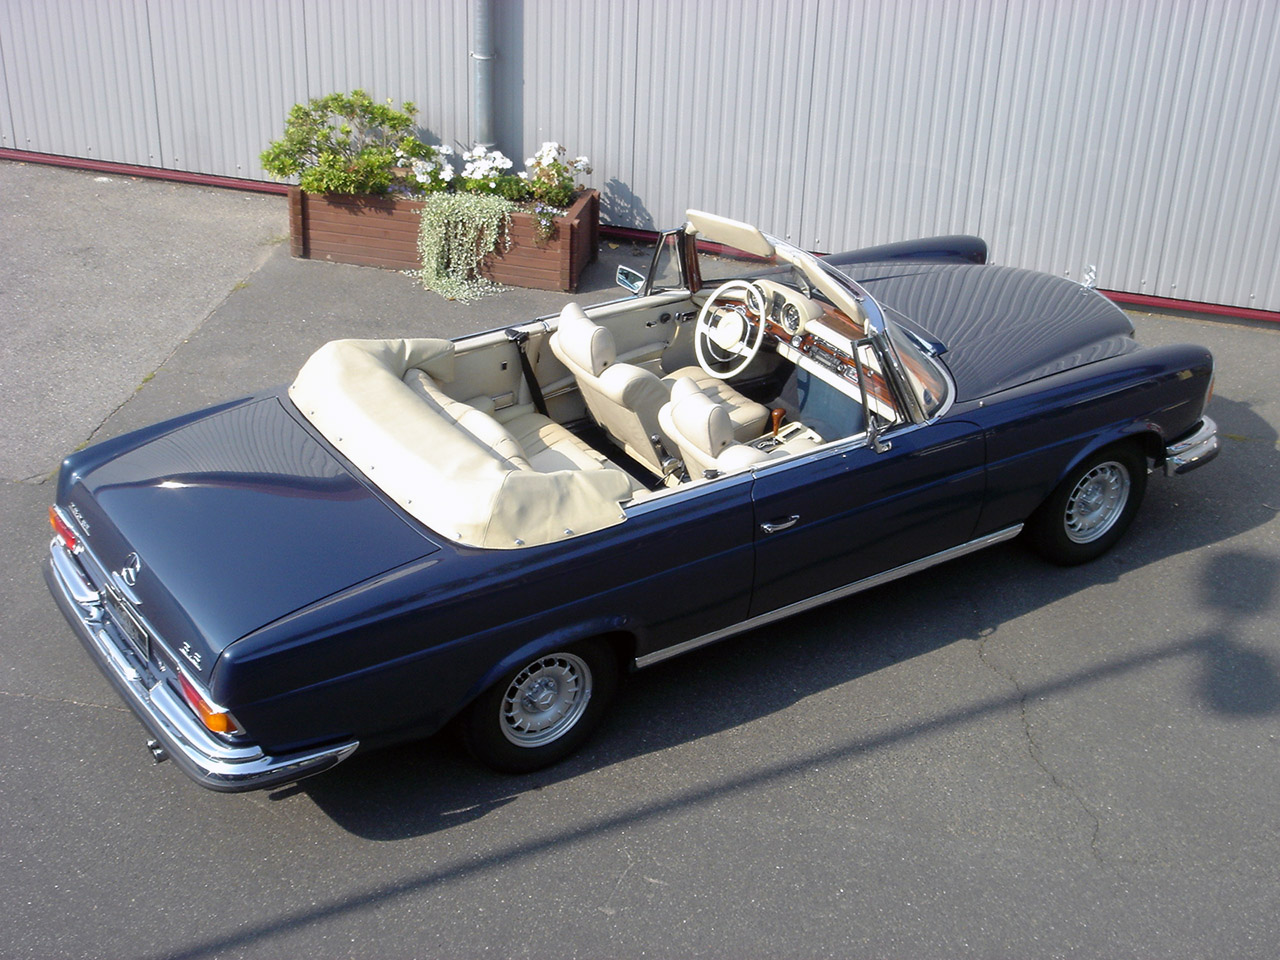 62c94 Ford Emblem Main Credit Suisse besides TransistorIgnition furthermore 300sd Vacuum Diagram in addition Wiring Diagram 84 Mercedes 280sl additionally 368396 W108 Euro Headlight Wiring. on wiring diagram 1970 mercedes 280sl